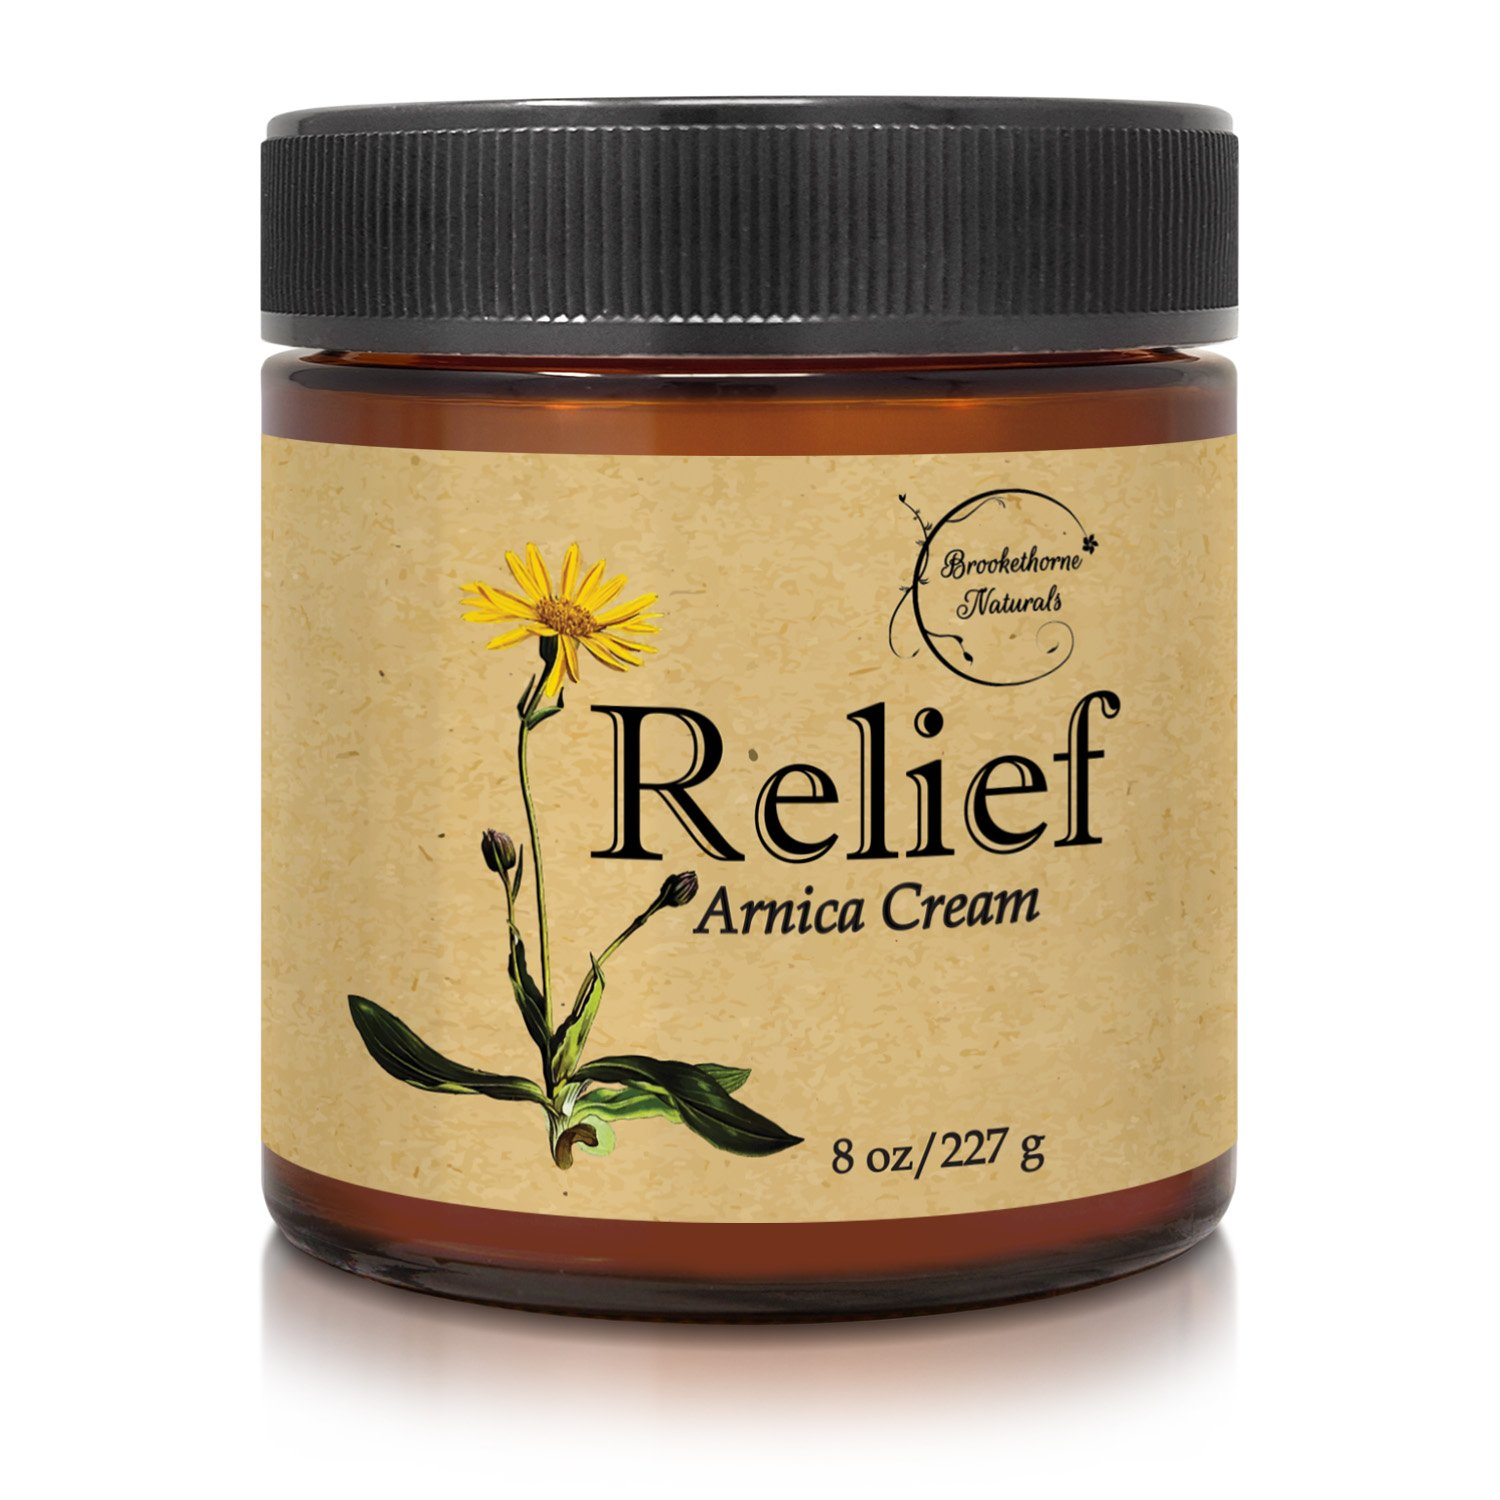 Relief Arnica Cream – Enriched with Lemongrass, Eucalyptus & Rosemary Essential Oils – All Natural Massage Lotion for Sore Muscles & Stiffness. Perfect for Massage Therapy by Brookethorne Naturals